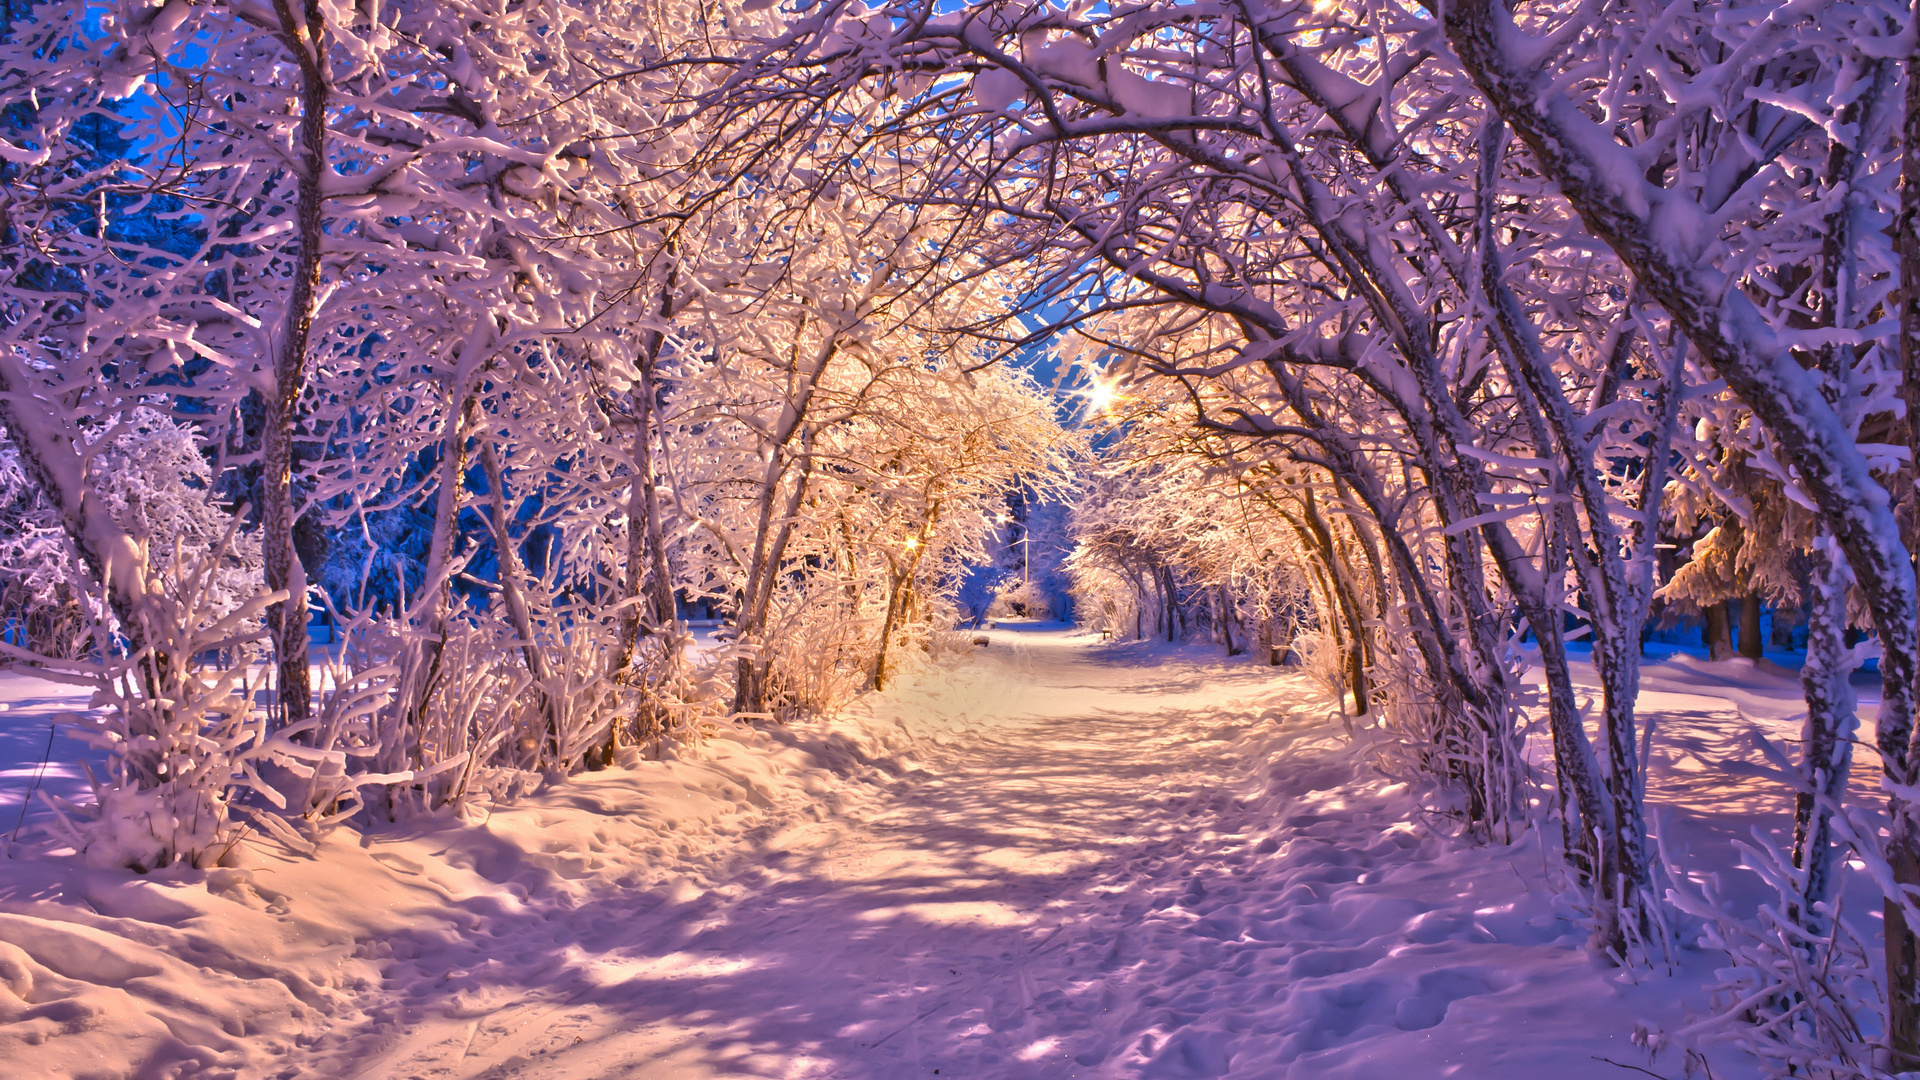 snow wallpaper christmas - HD Desktop Wallpapers | 4k HD